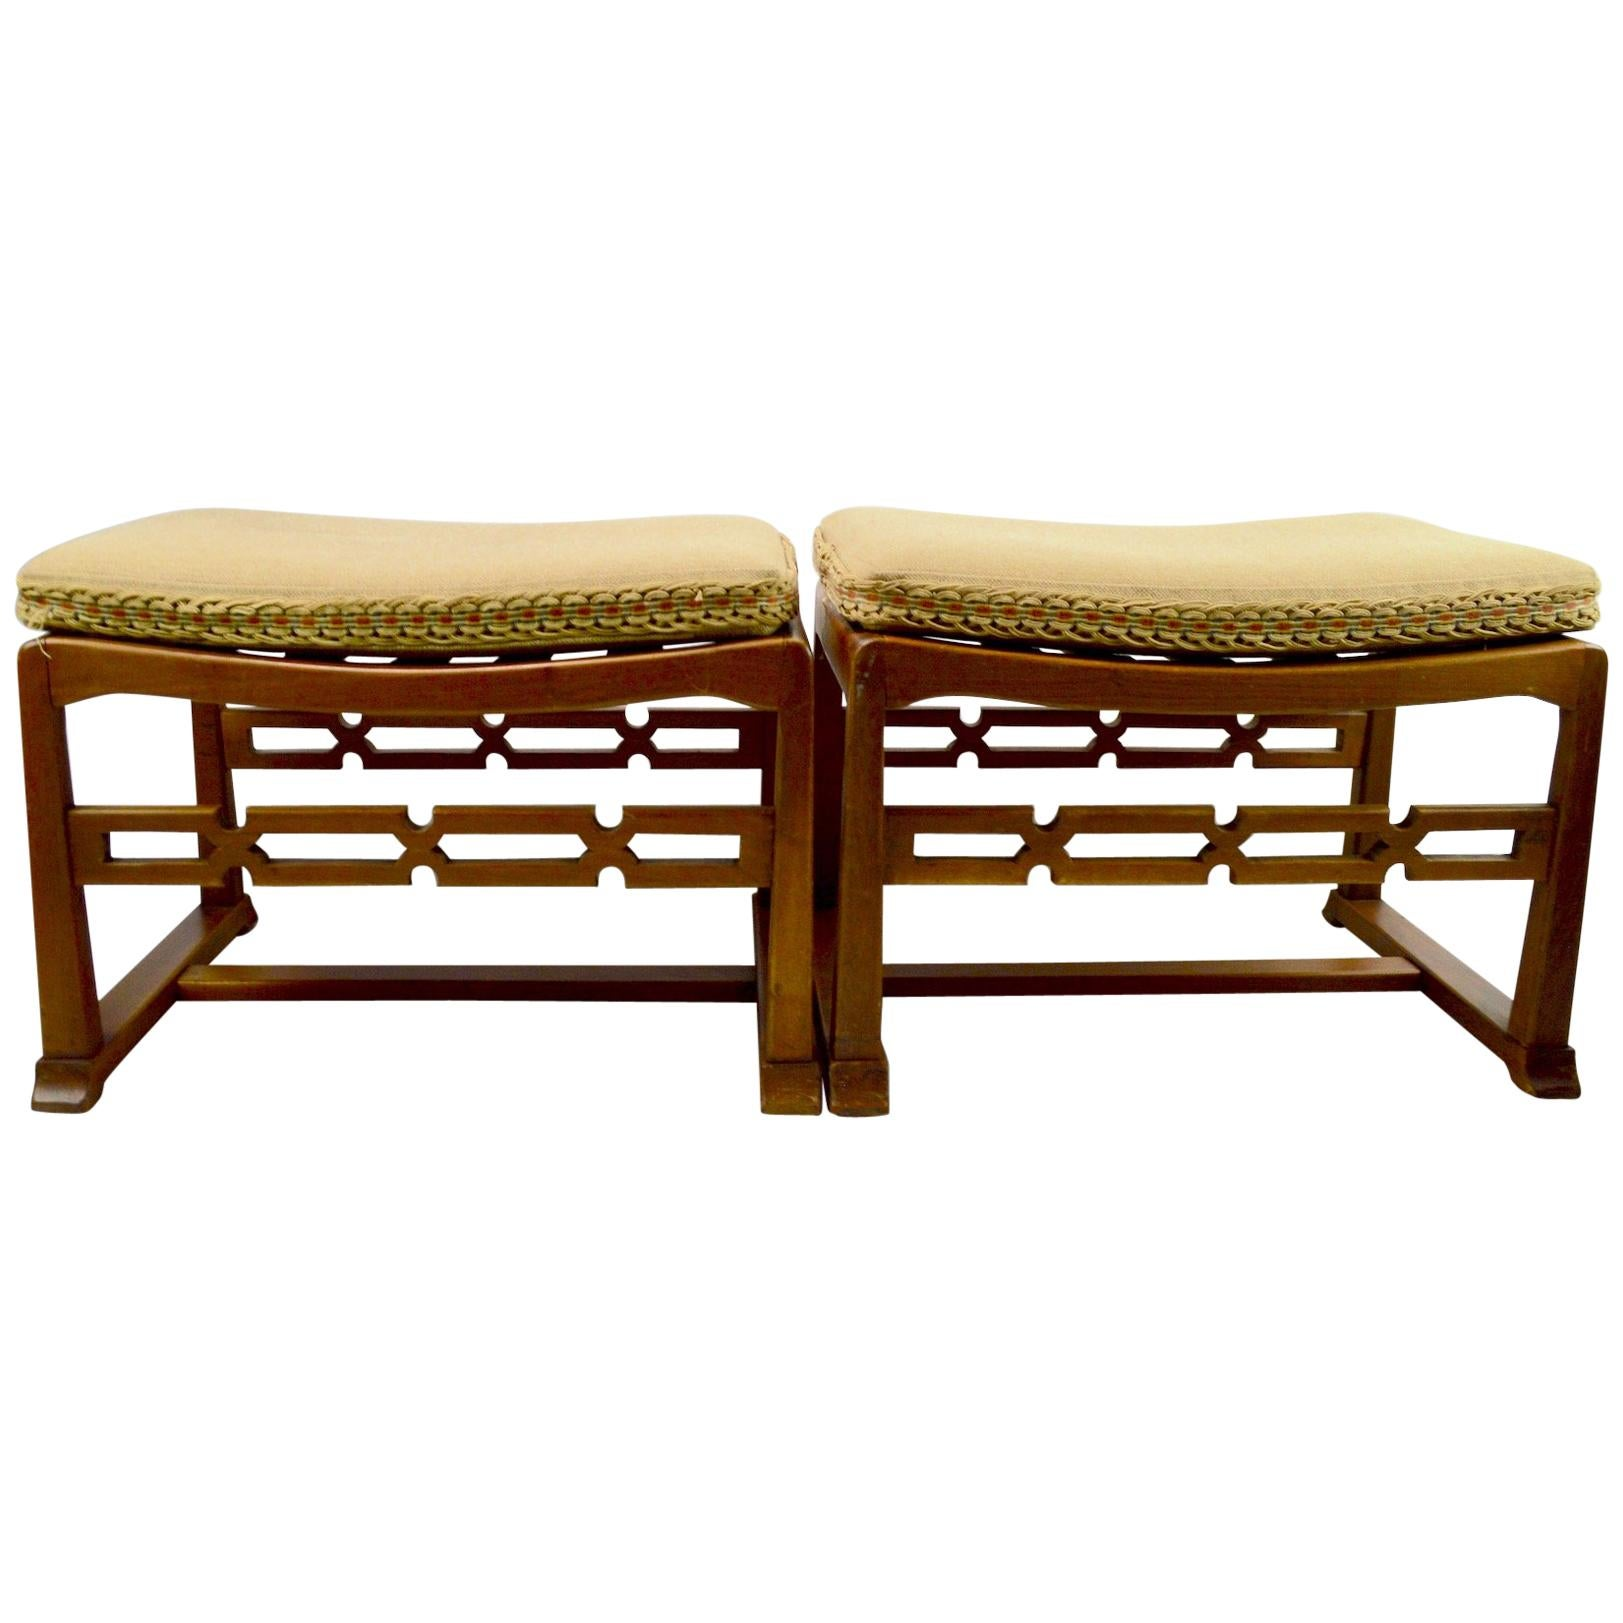 Pair of Chinese Style Asia Modern Stool, Bench, Footrest, Ottomans